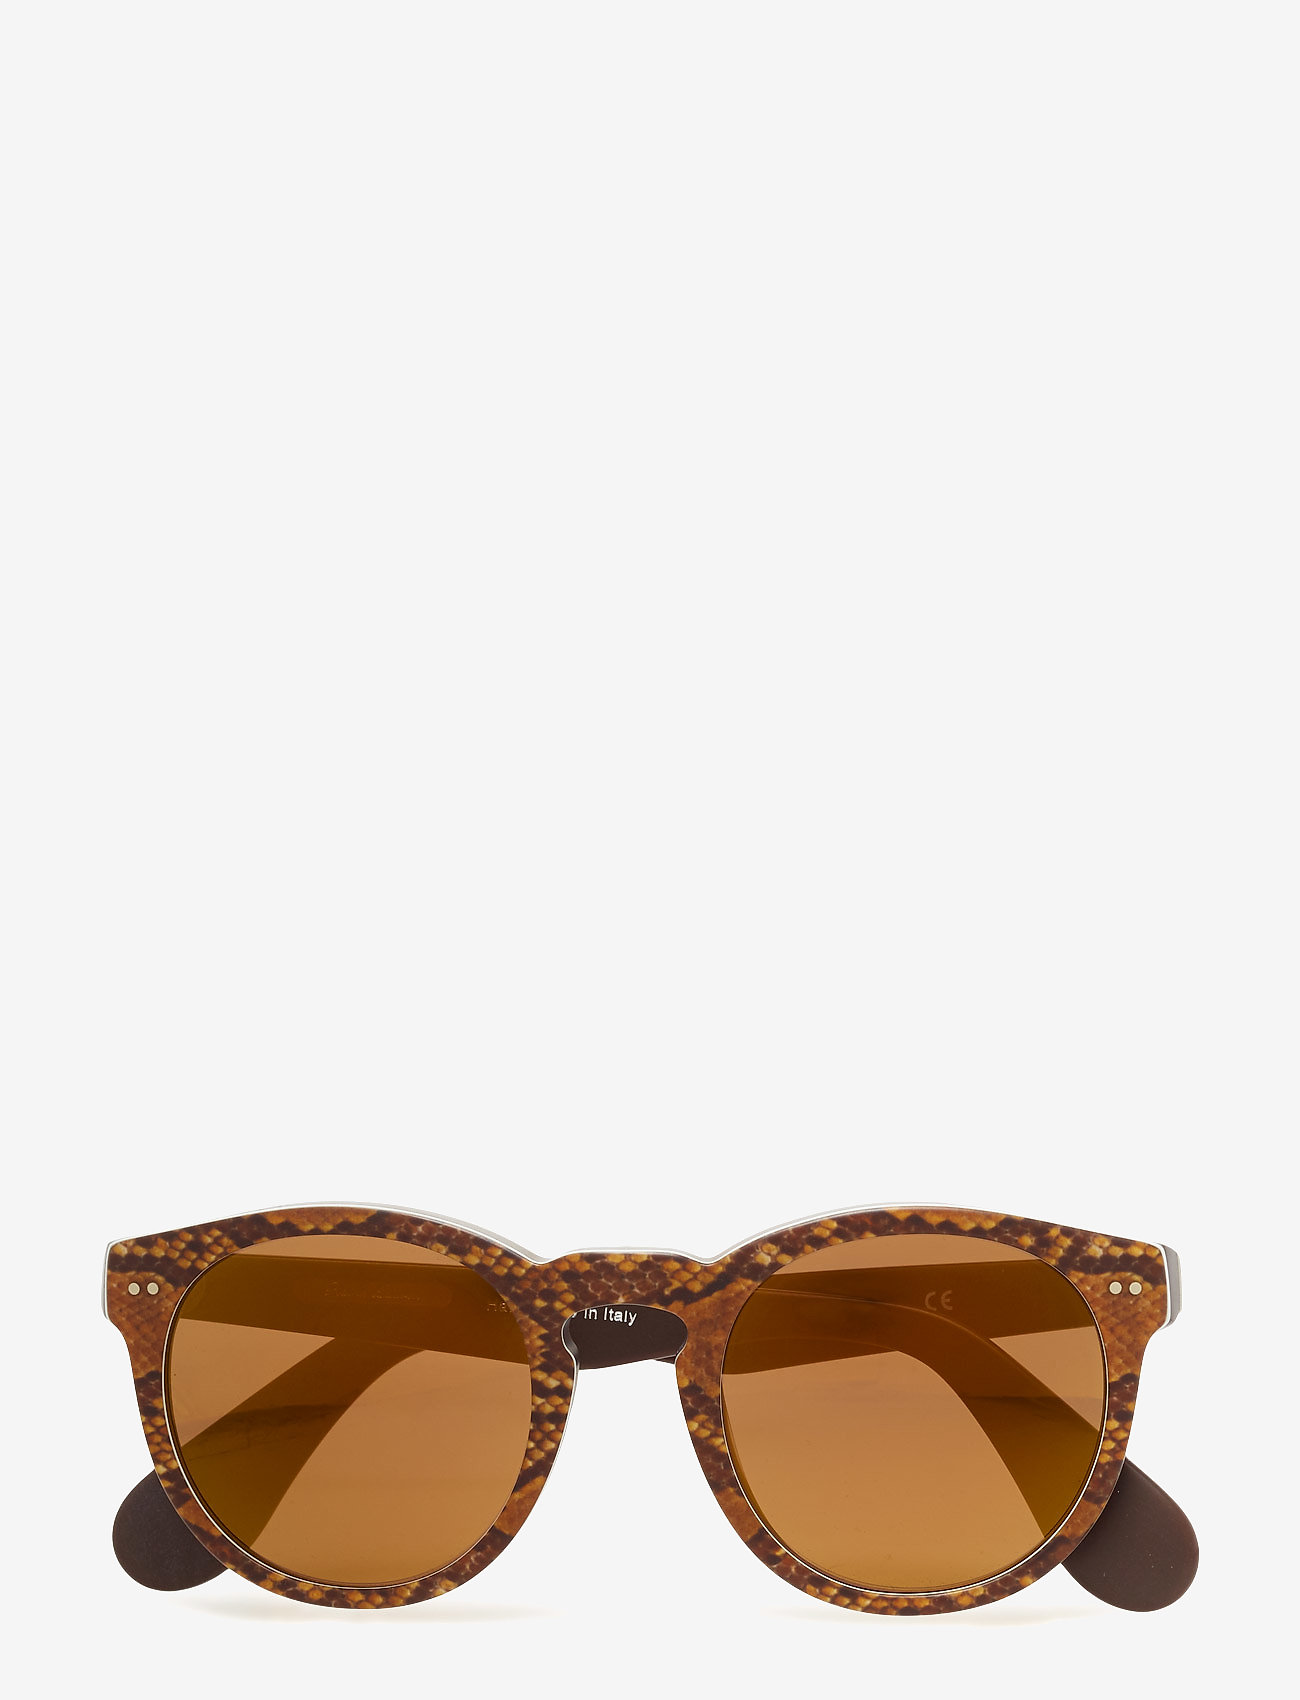 Ralph Ralph Lauren Sunglasses - HERITAGE - rond model - top python on brown vintage - 0